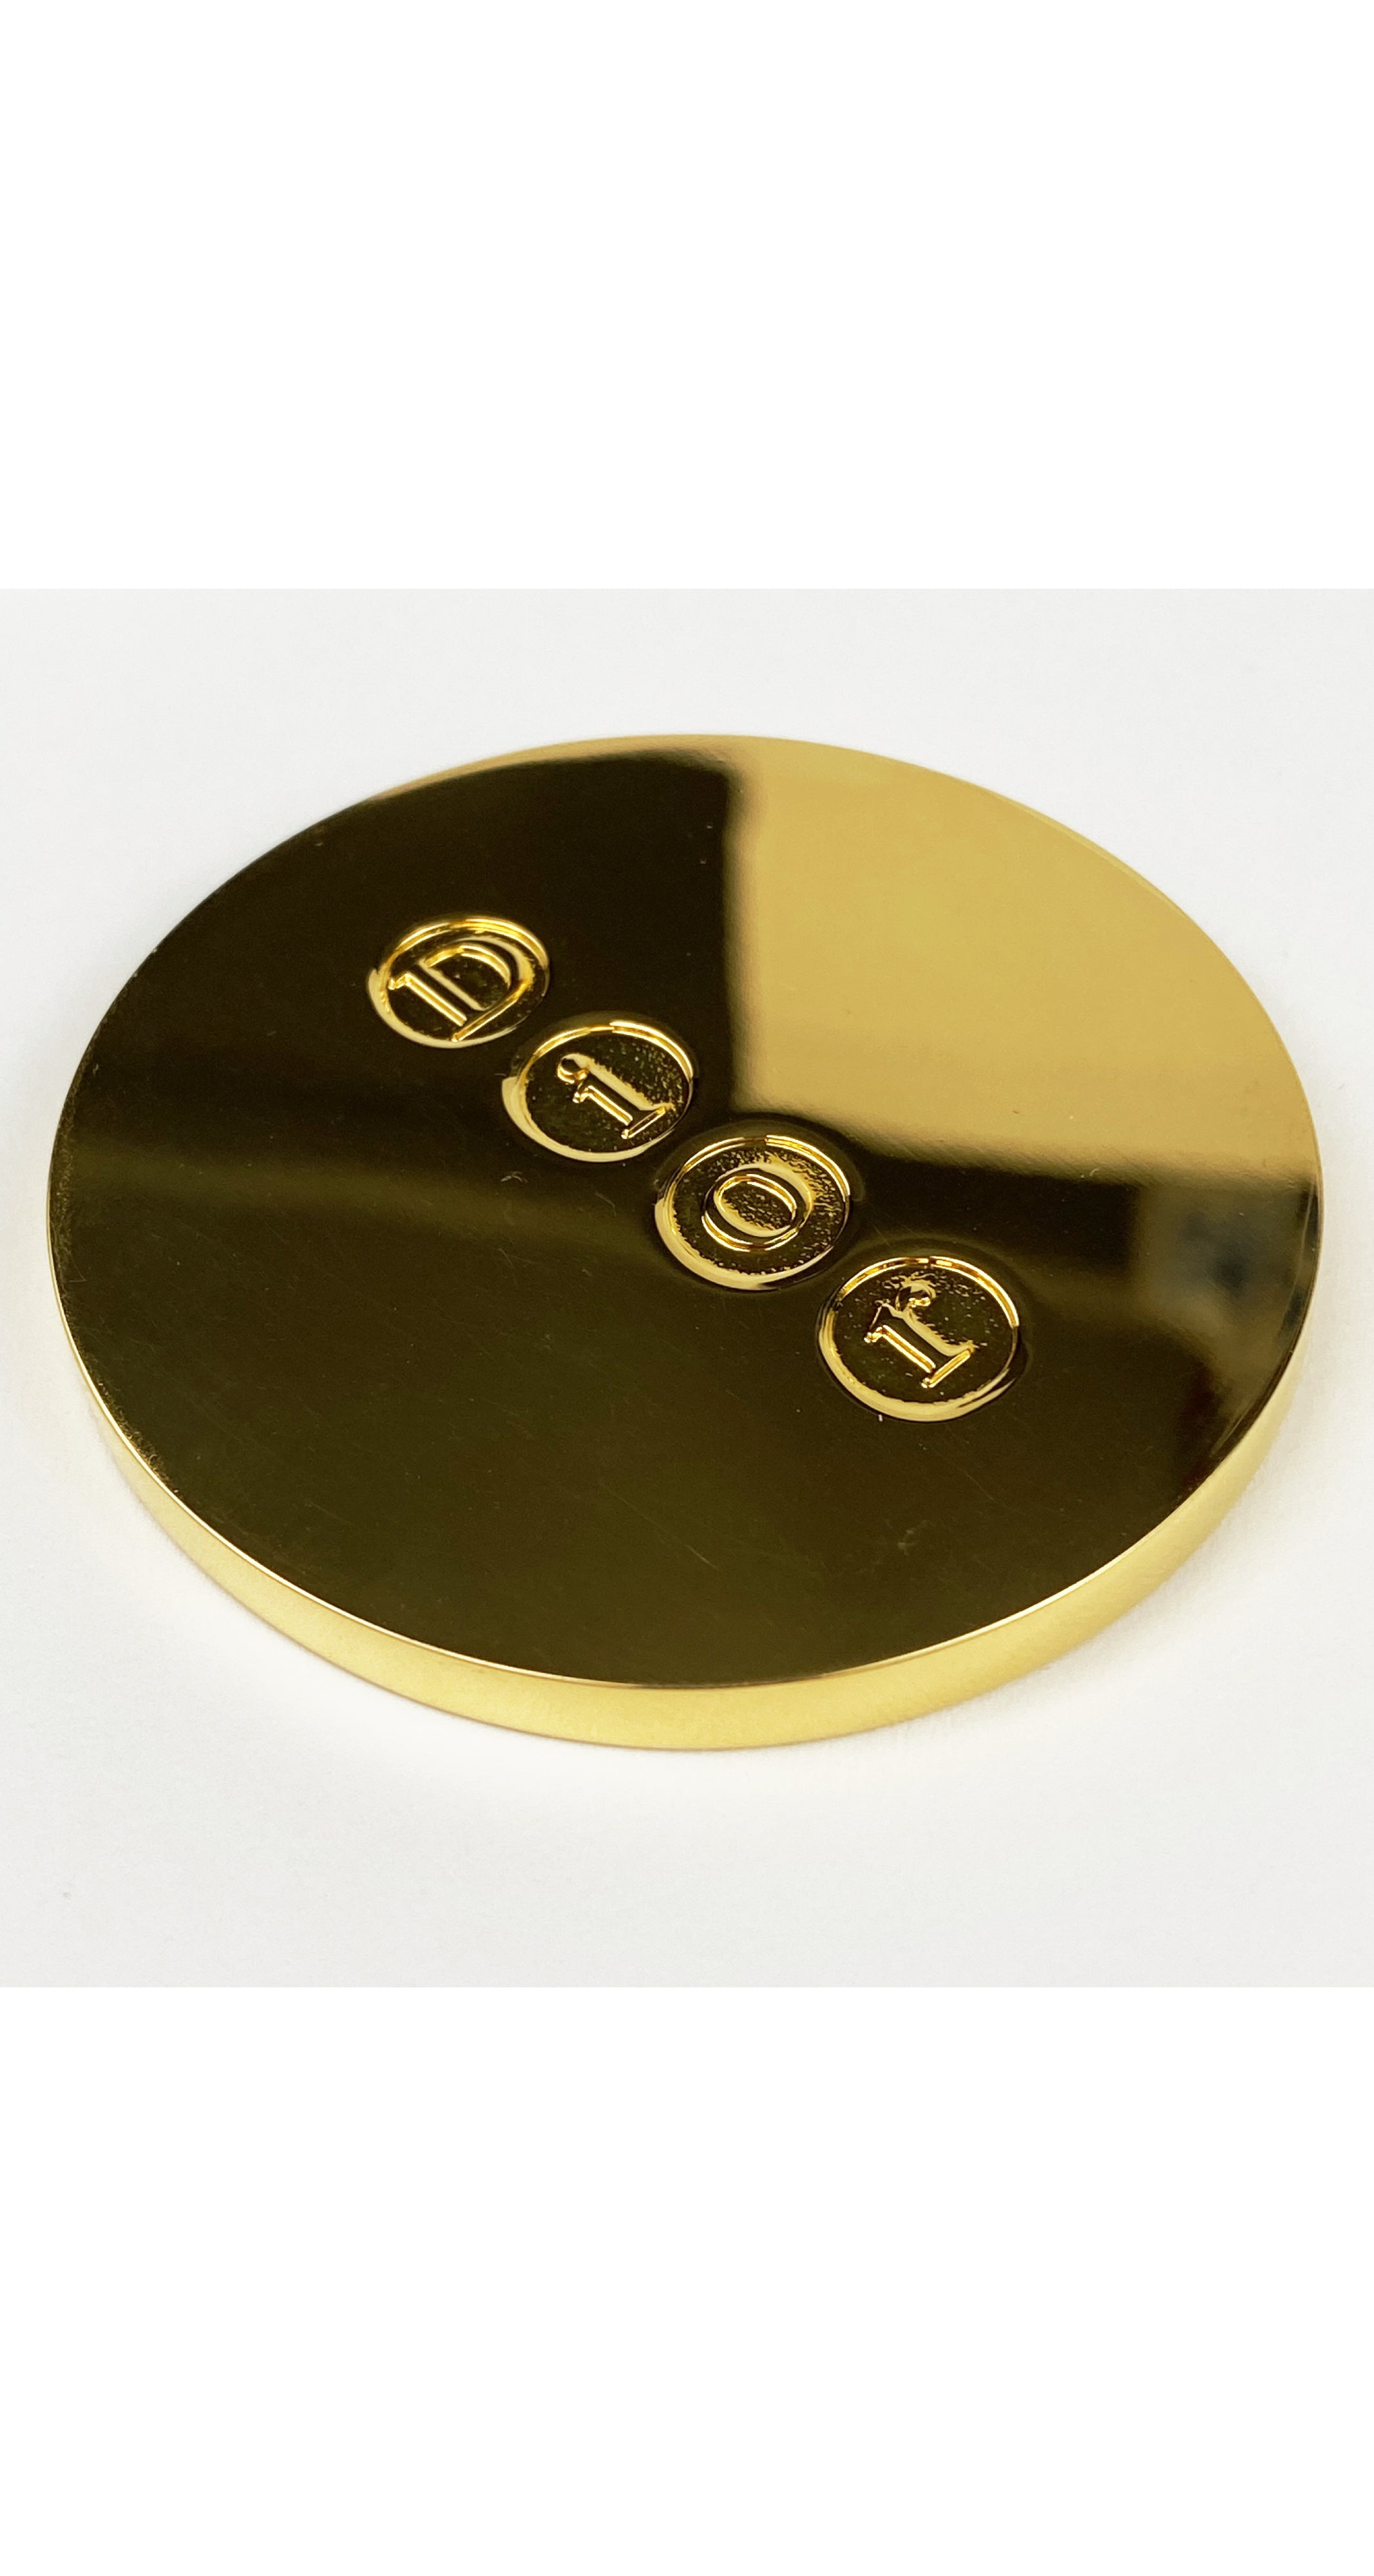 "1980s ""DIOR"" Signed Gold Metal Compact Mirror"